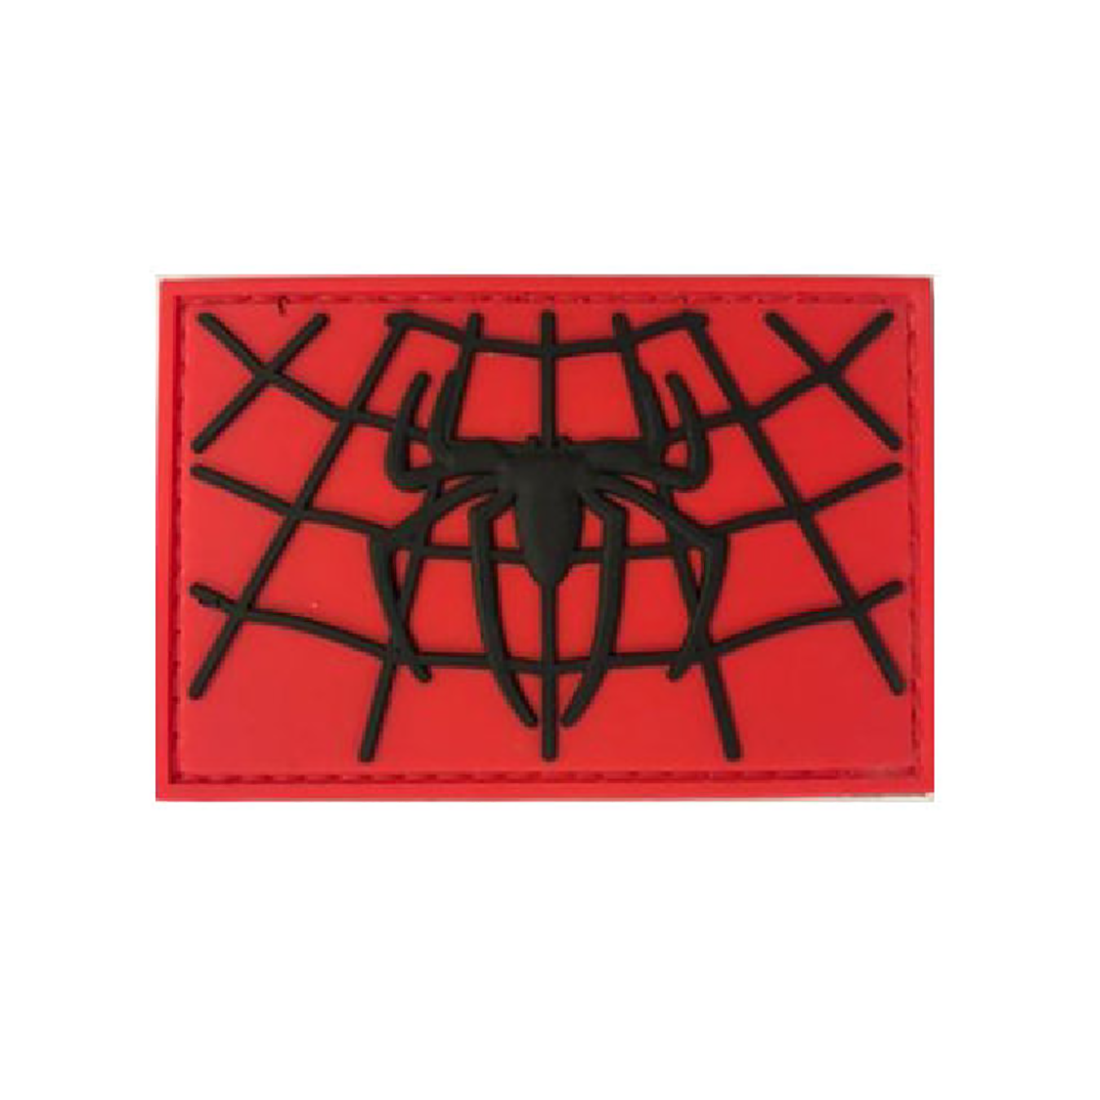 SPIDER-MAN (Red & BlACK) Tactical Rubber Velcro Patches